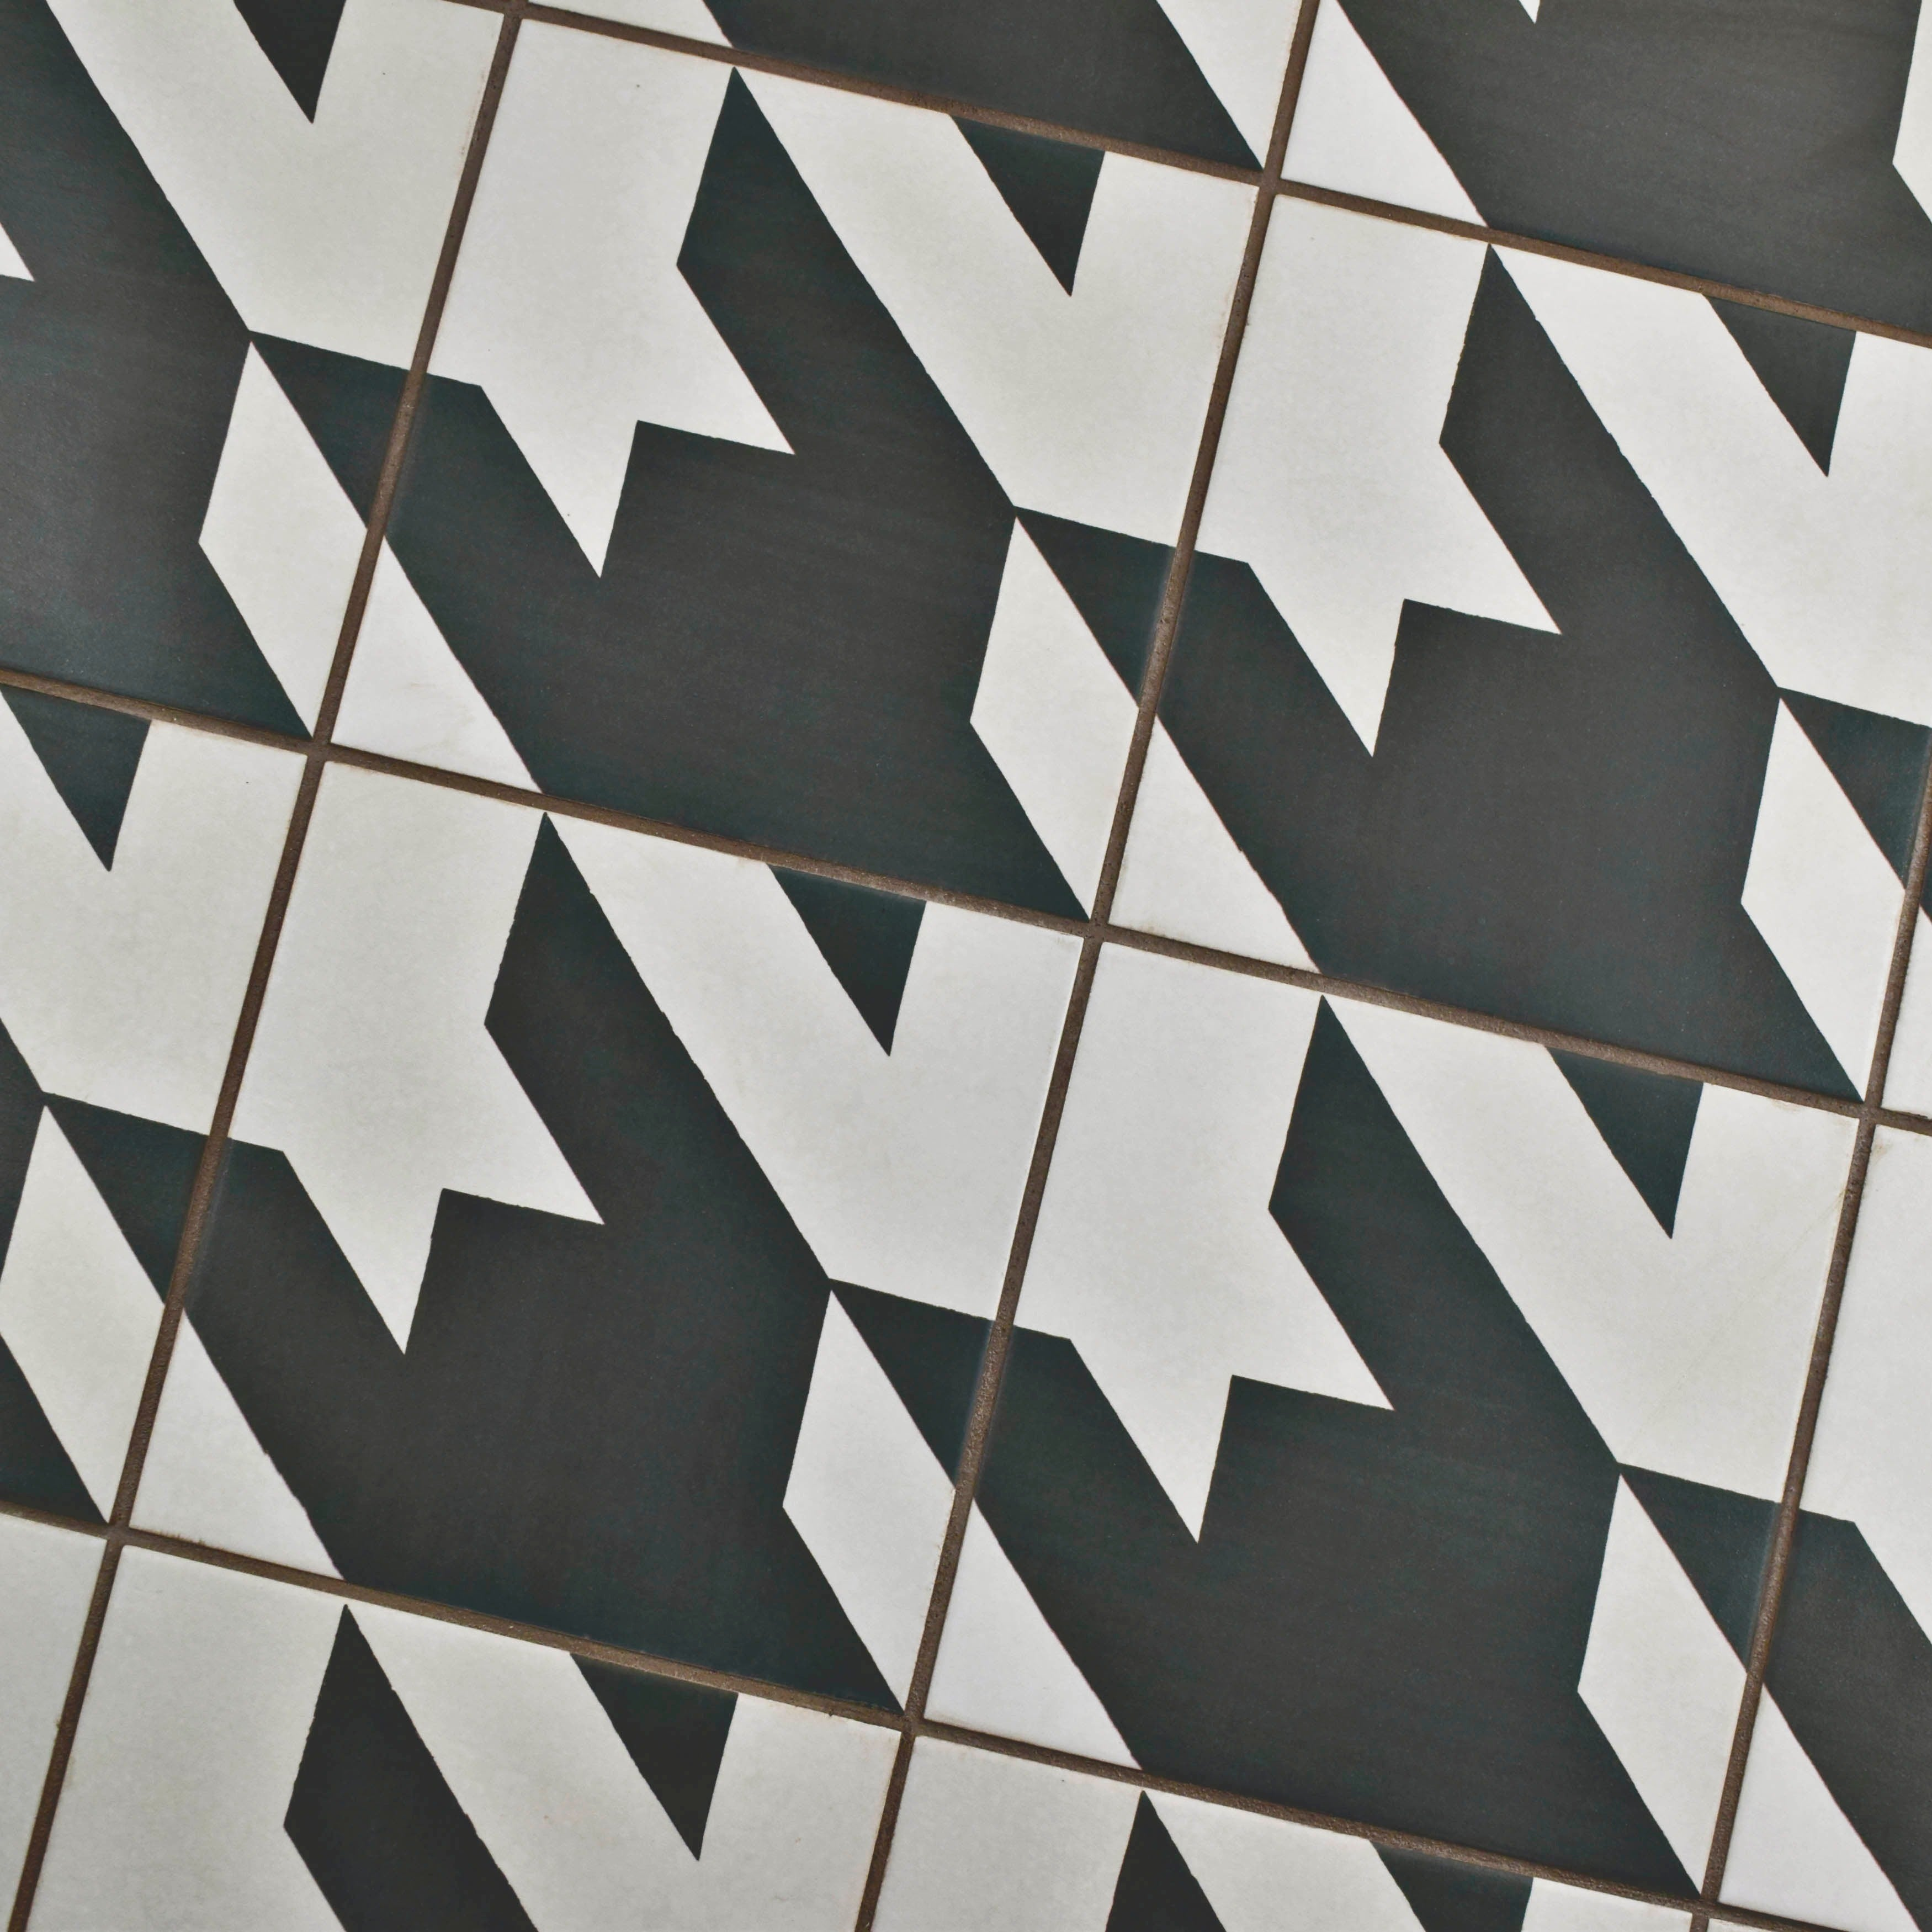 Somertile 7 875x7 875 Inch Piccola Black And White Tweed Porcelain Floor Wall Tile 25 Tiles 11 46 Sqft Ships To Canada Ca